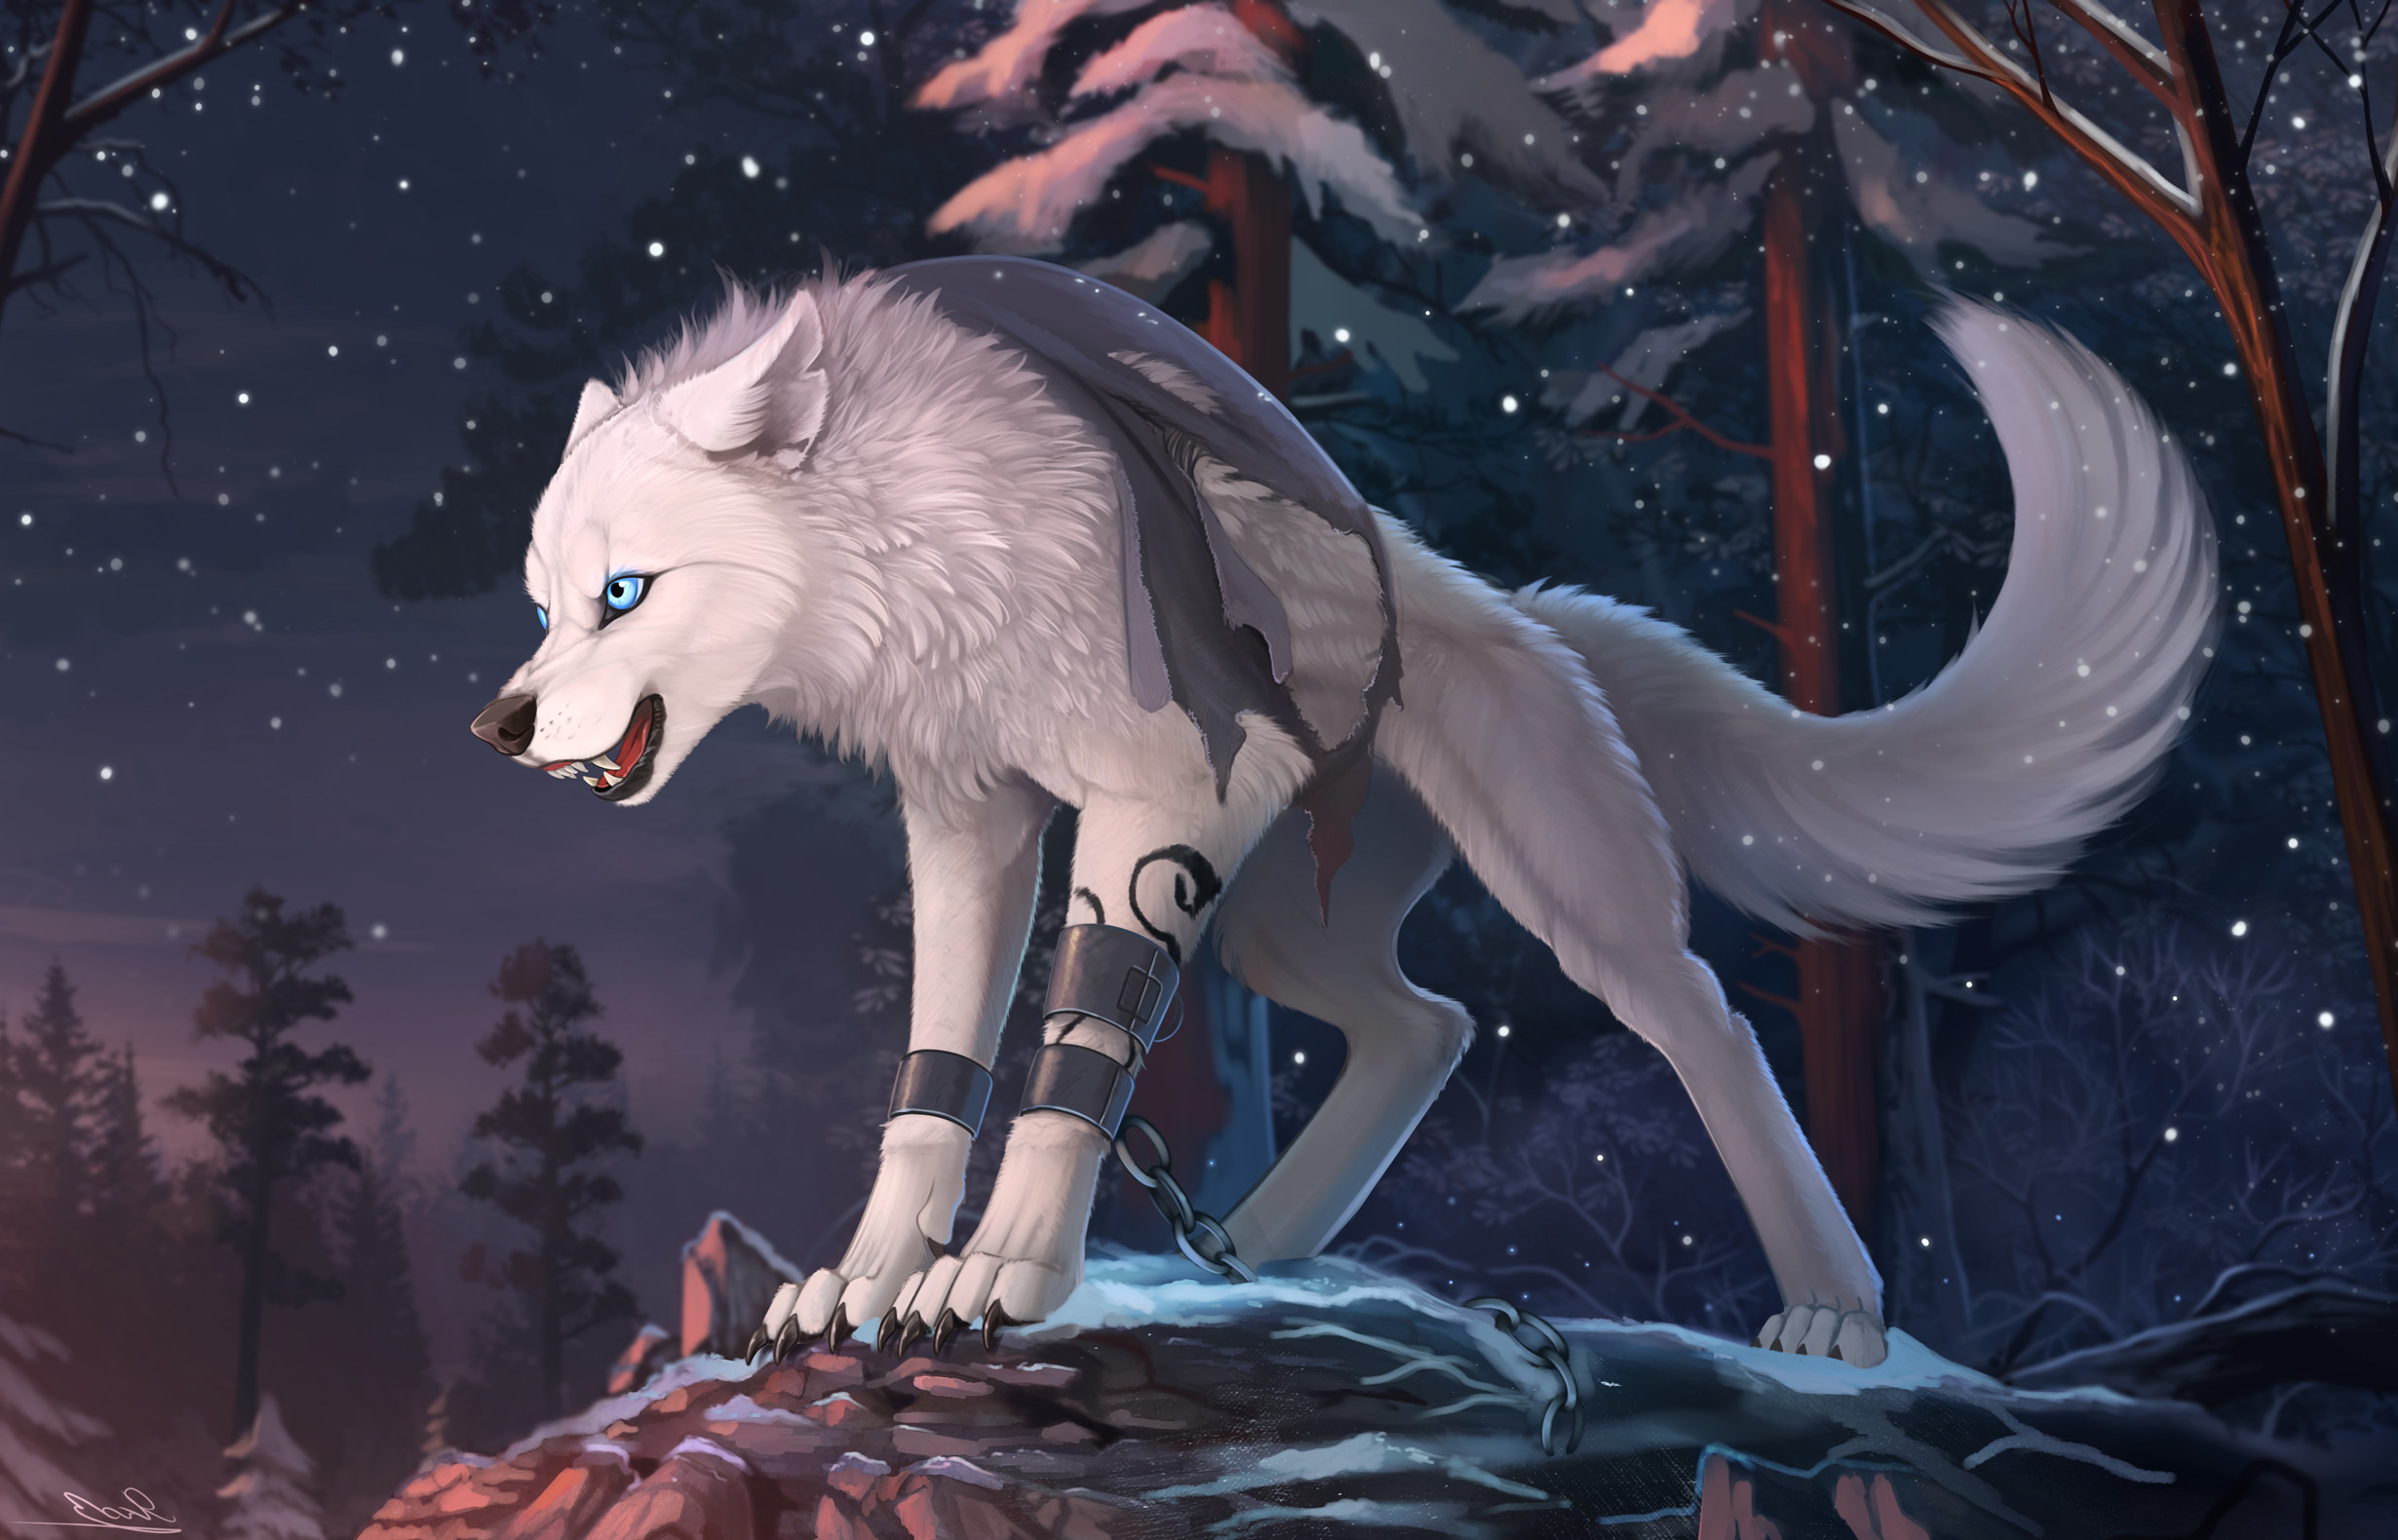 Res: 2460x1580, Wolf Furry Wallpaper, (-4.25 Mb)